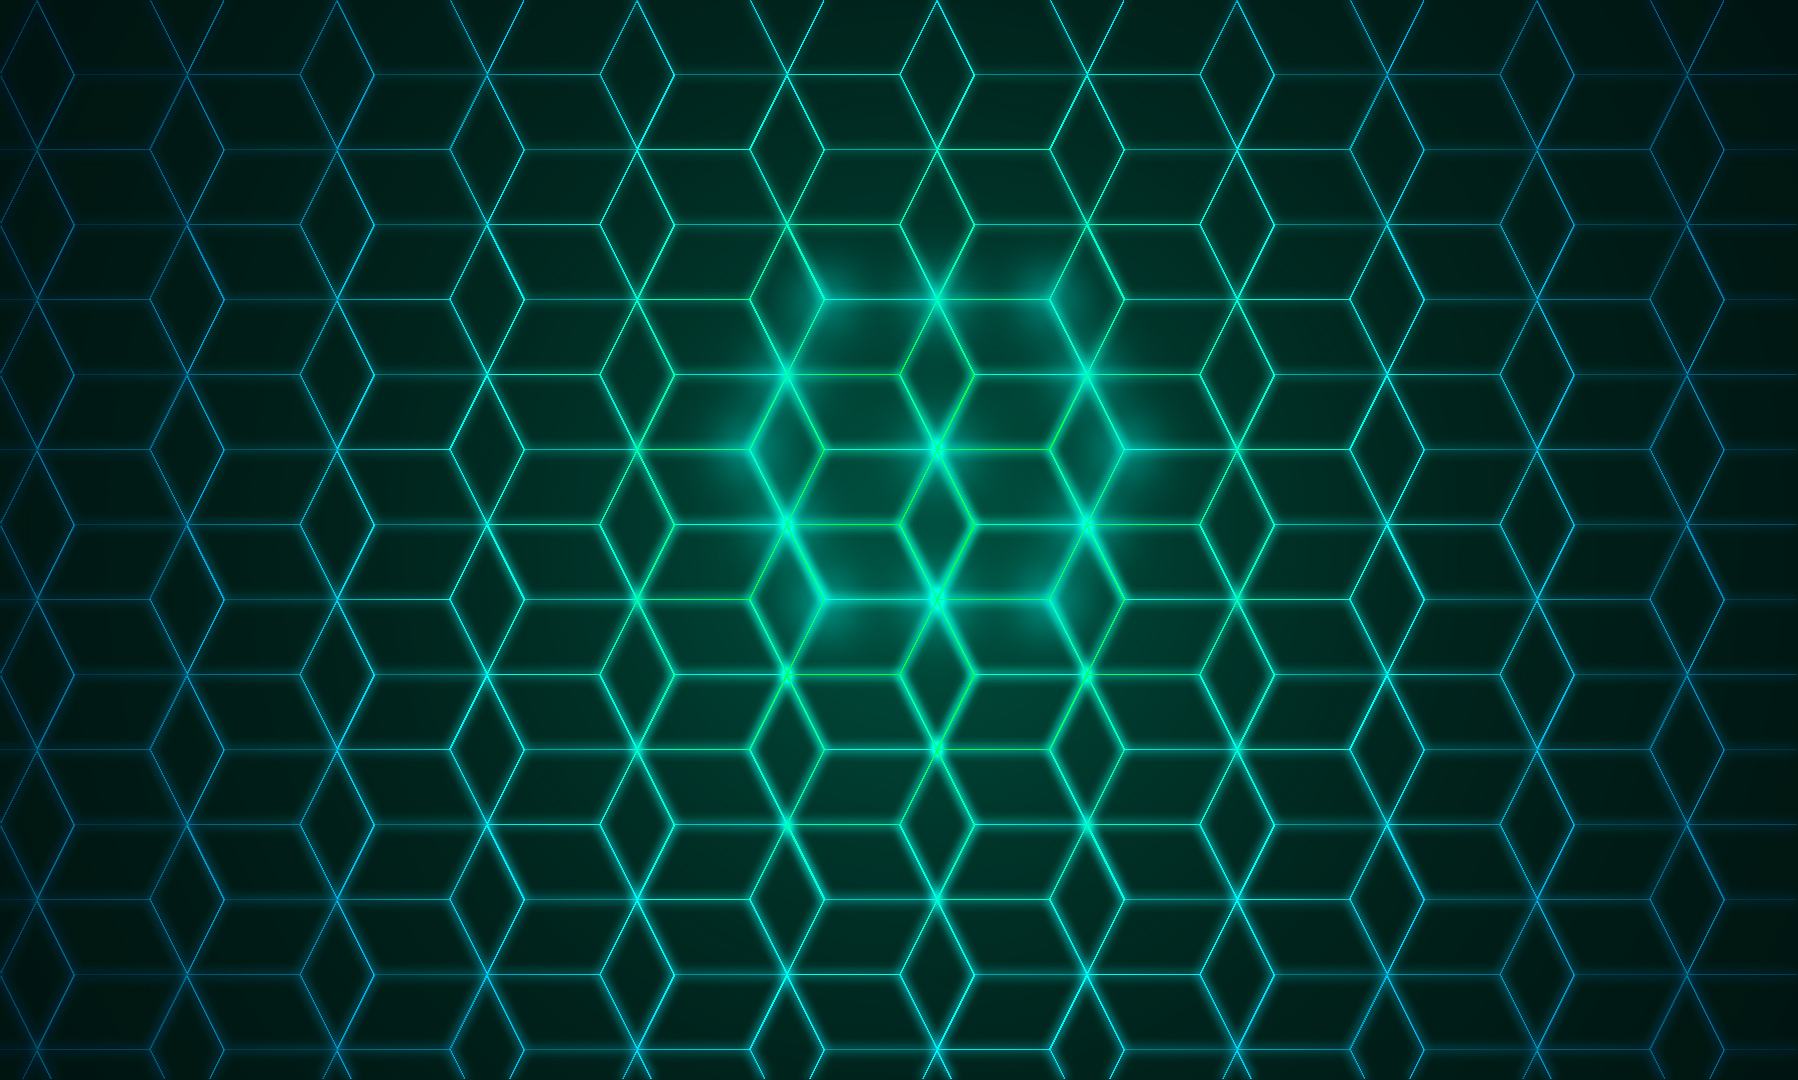 Neon Lights Wallpaper by wil1295 1798x1080